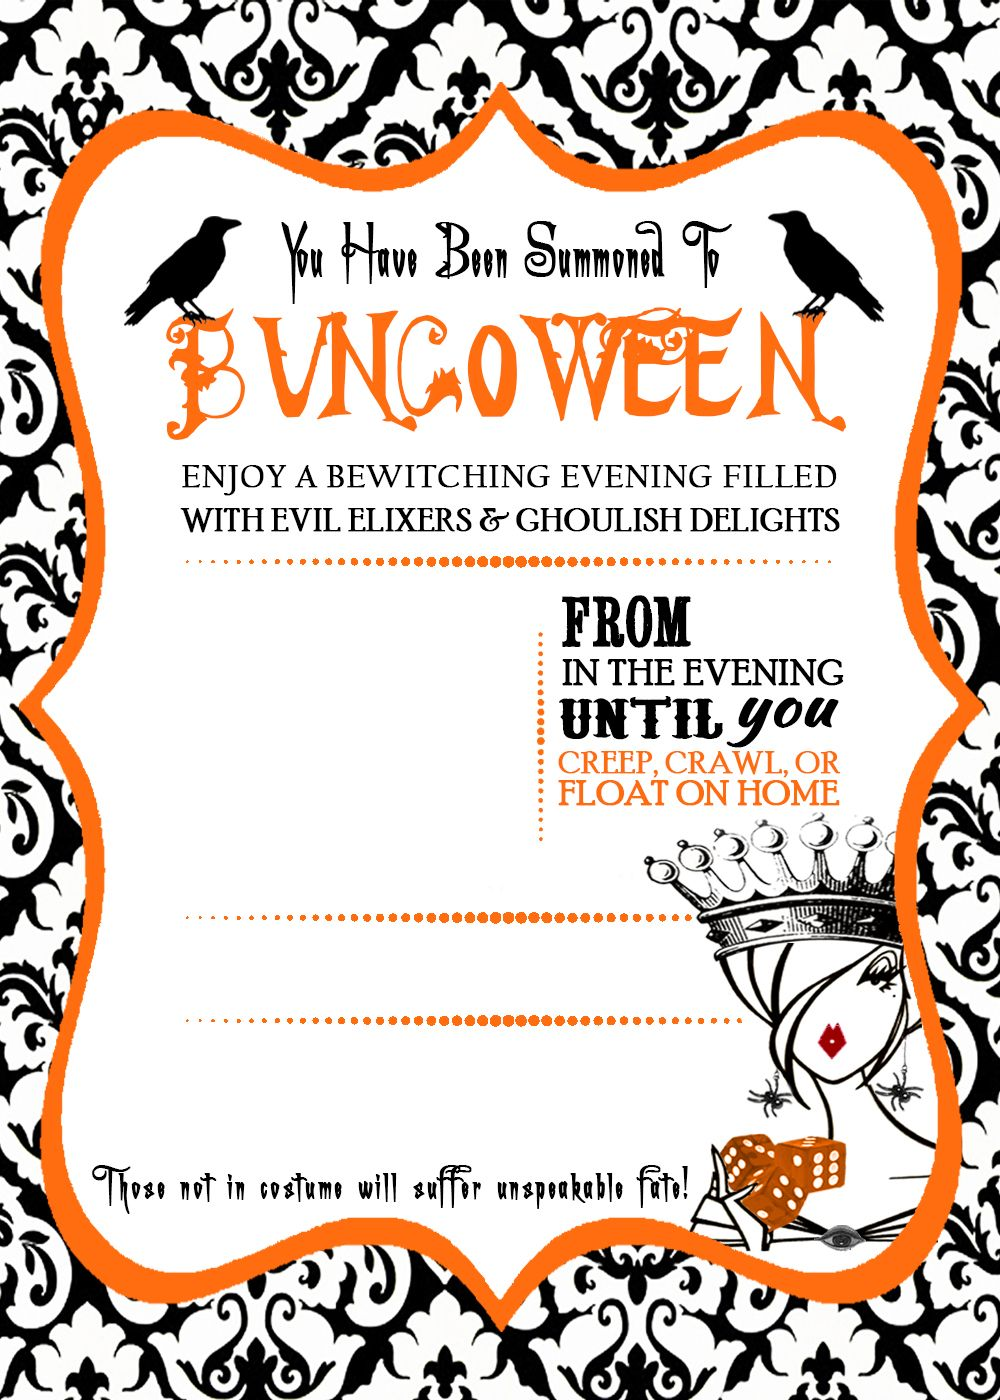 Here Is An Invite You Can Customize With Your Own Information